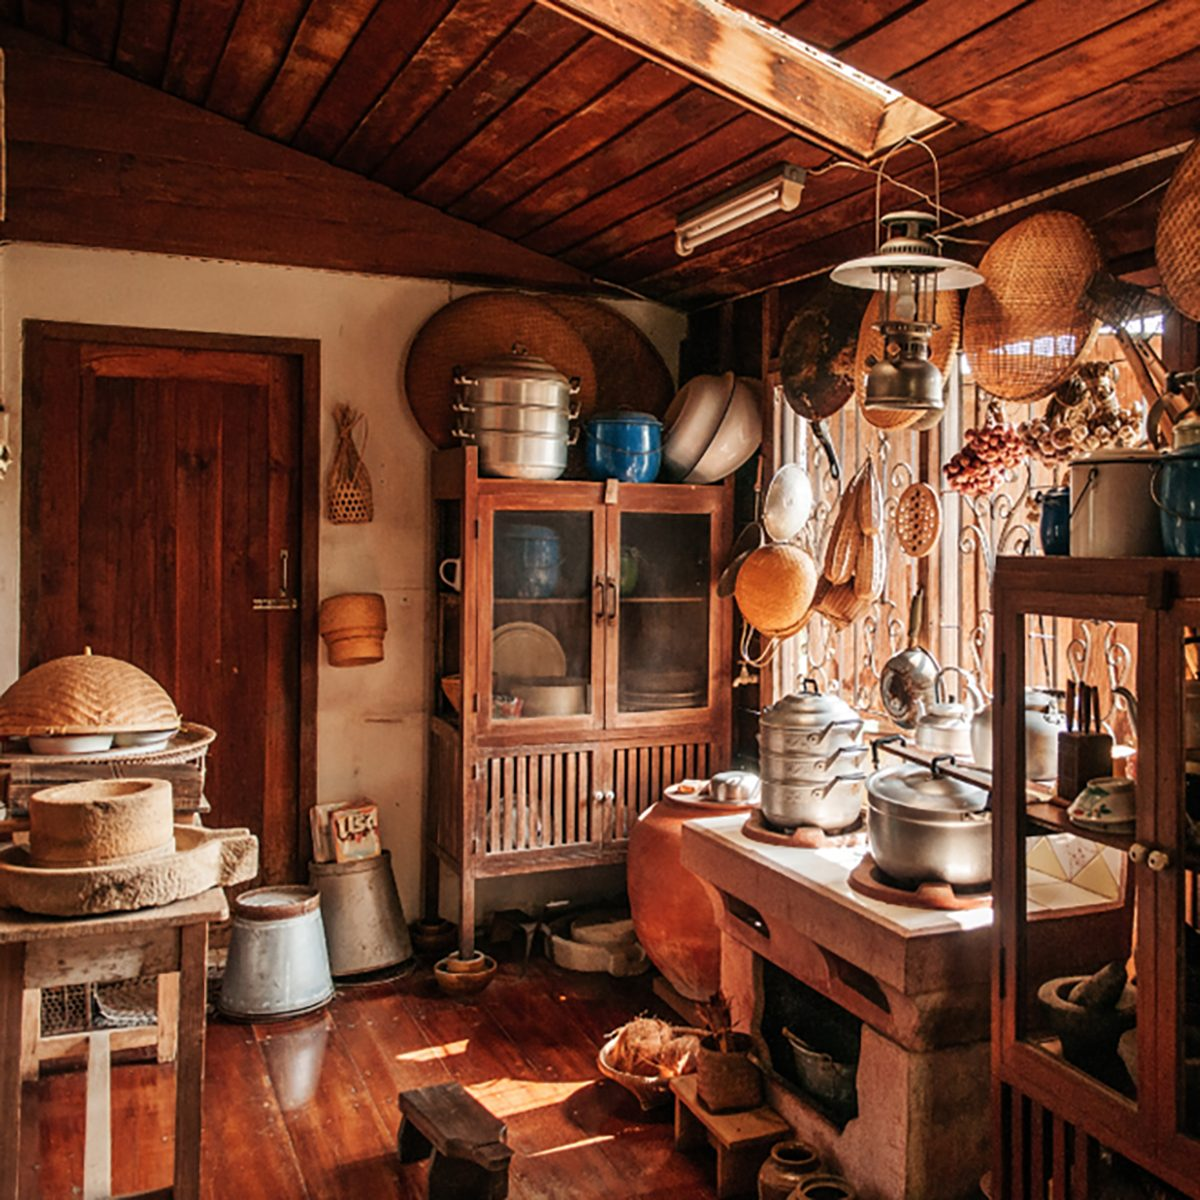 Rustic Wooden Vintage Kitchen In Country House Interior Decoration For Thai  Style House With Wooden Furnitures